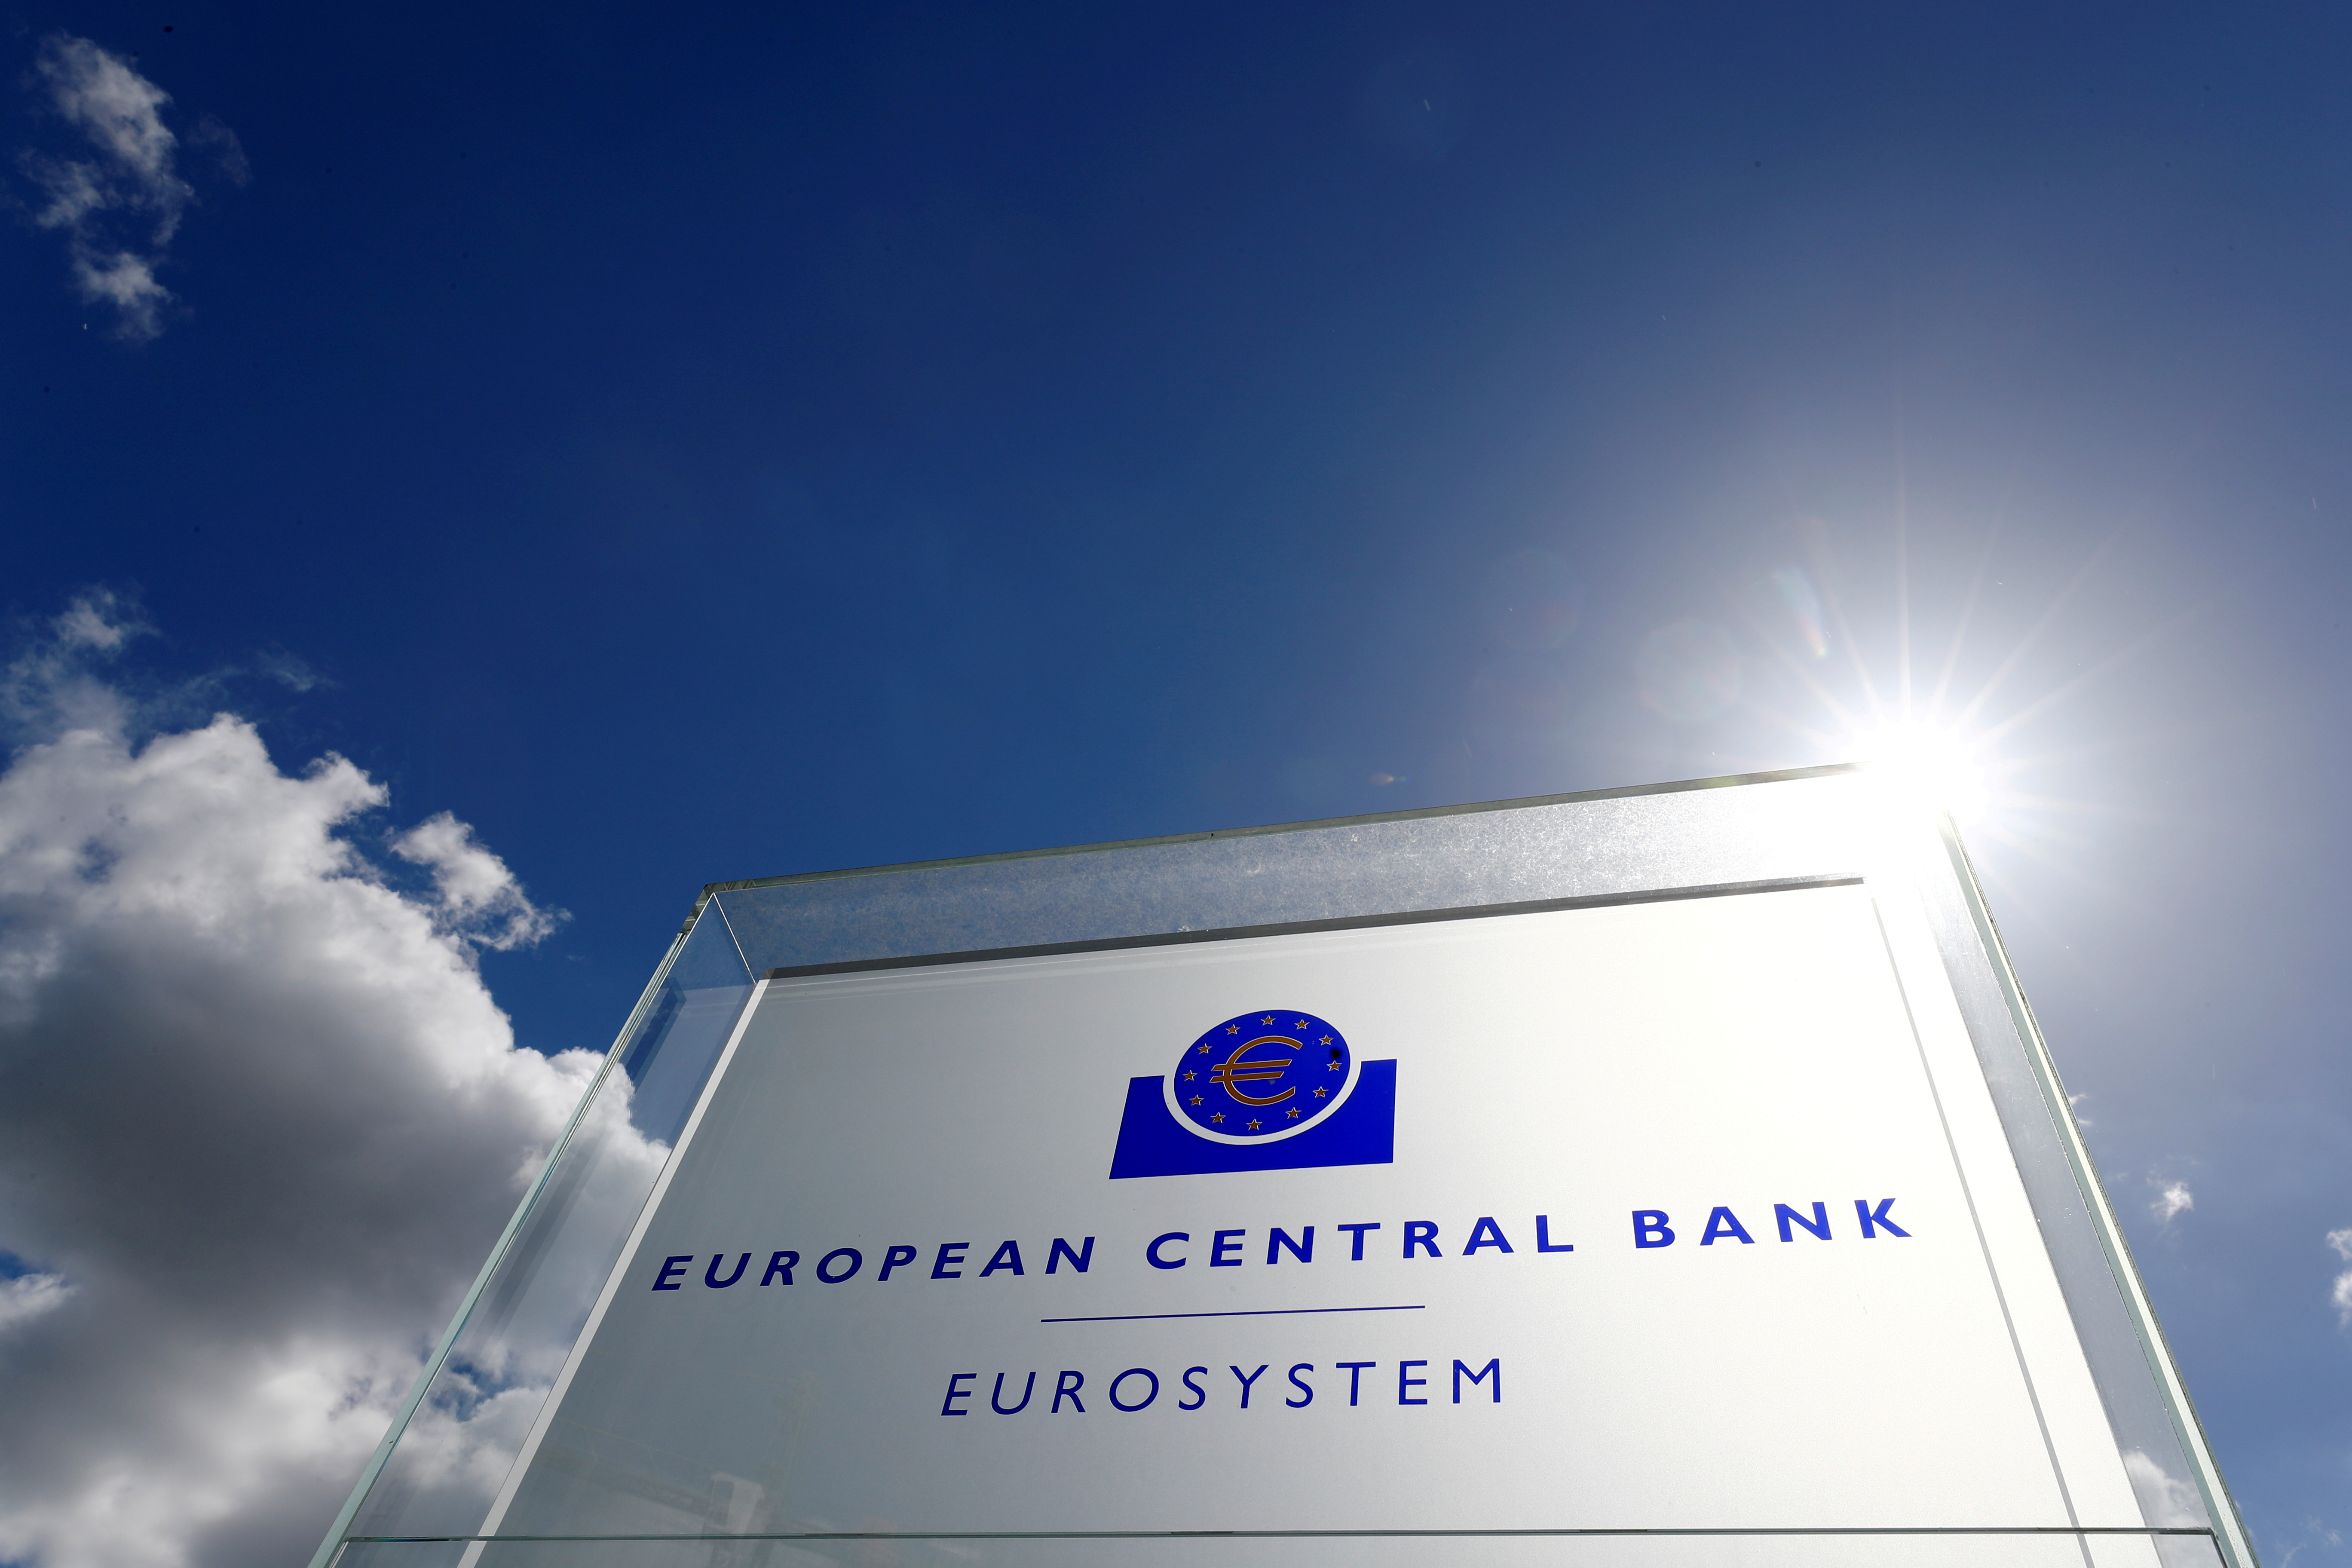 The logo of the European Central Bank (ECB) is pictured outside its headquarters in Frankfurt, Germany, April 26, 2018. REUTERS/Kai Pfaffenbach///File Photo